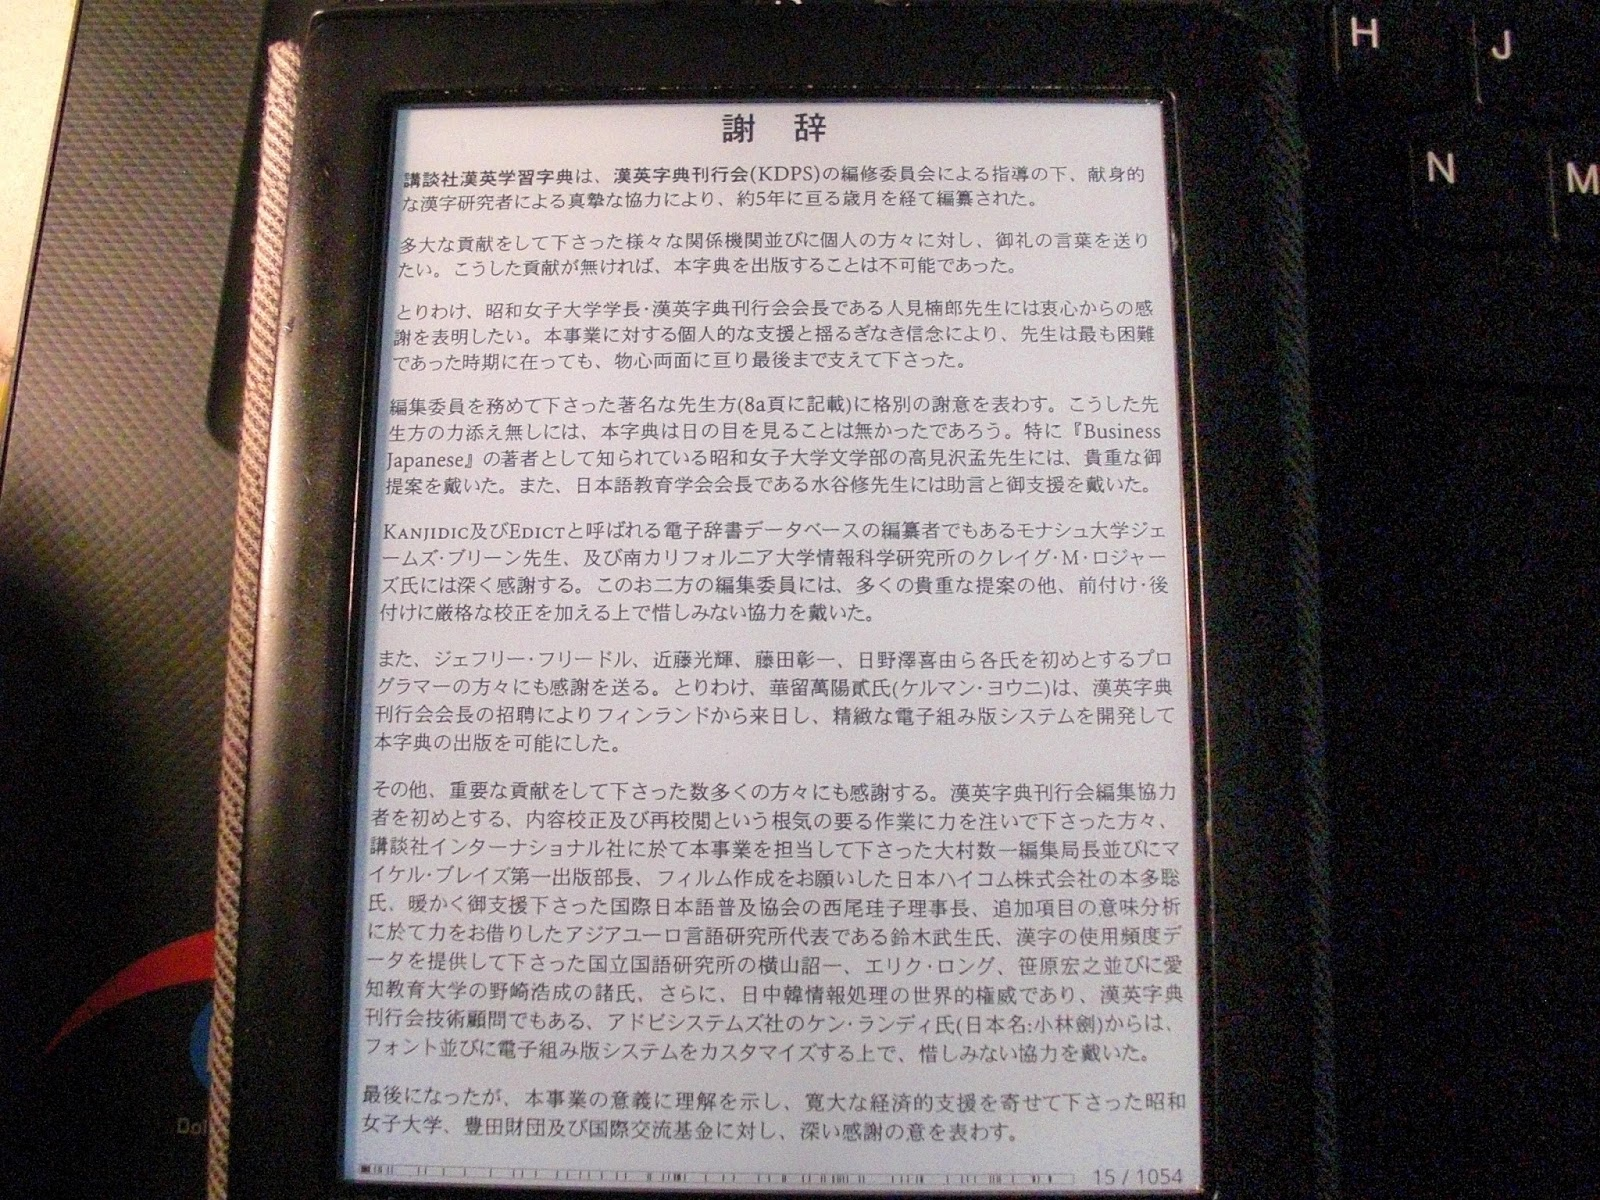 Browsing some books on my Kobo Glo HD | Fine Oils